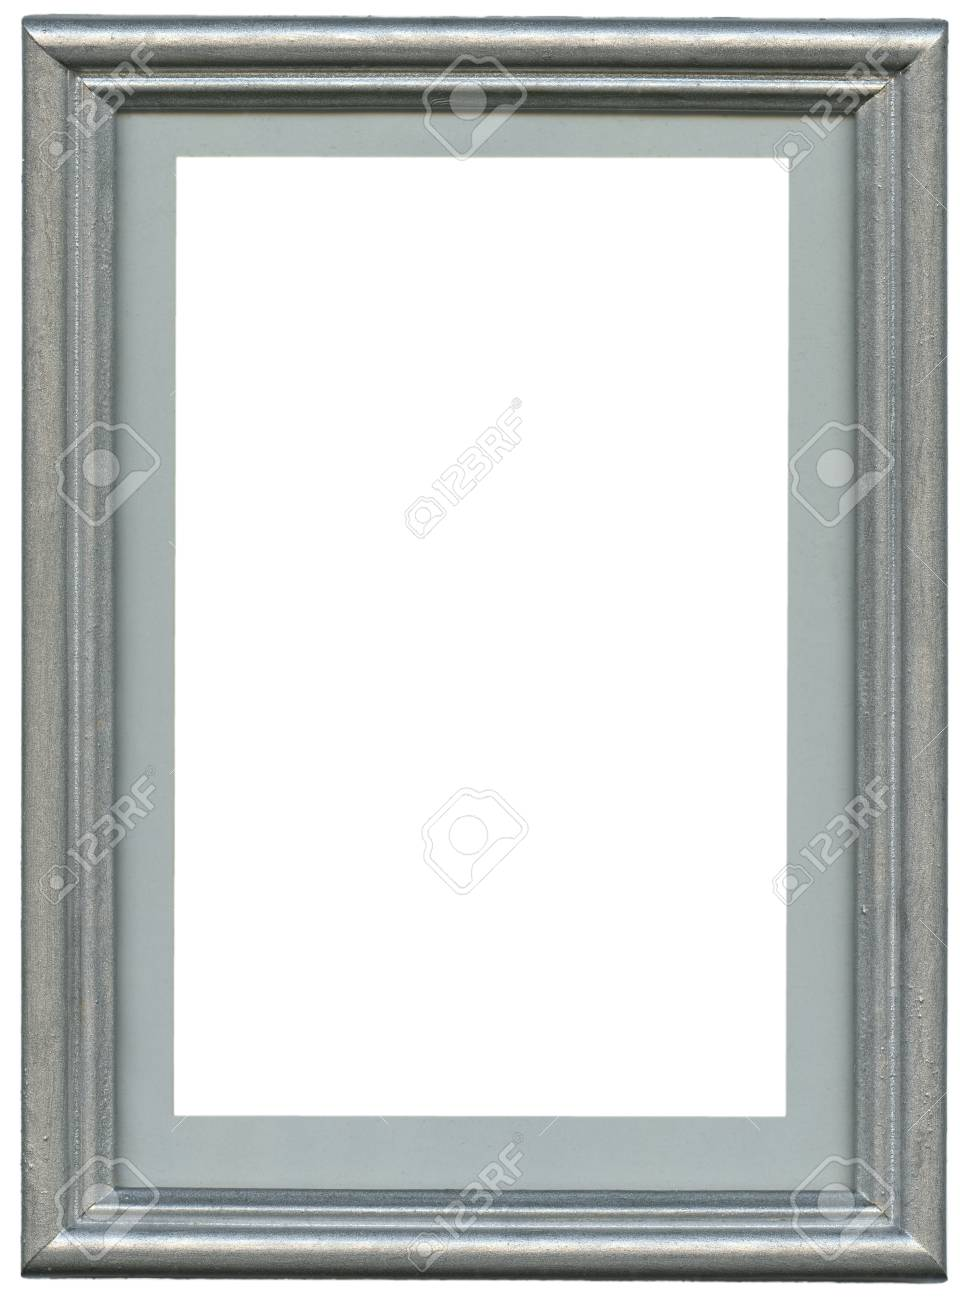 silver frame. Isolated over white background with clipping path Stock Photo - 22744115